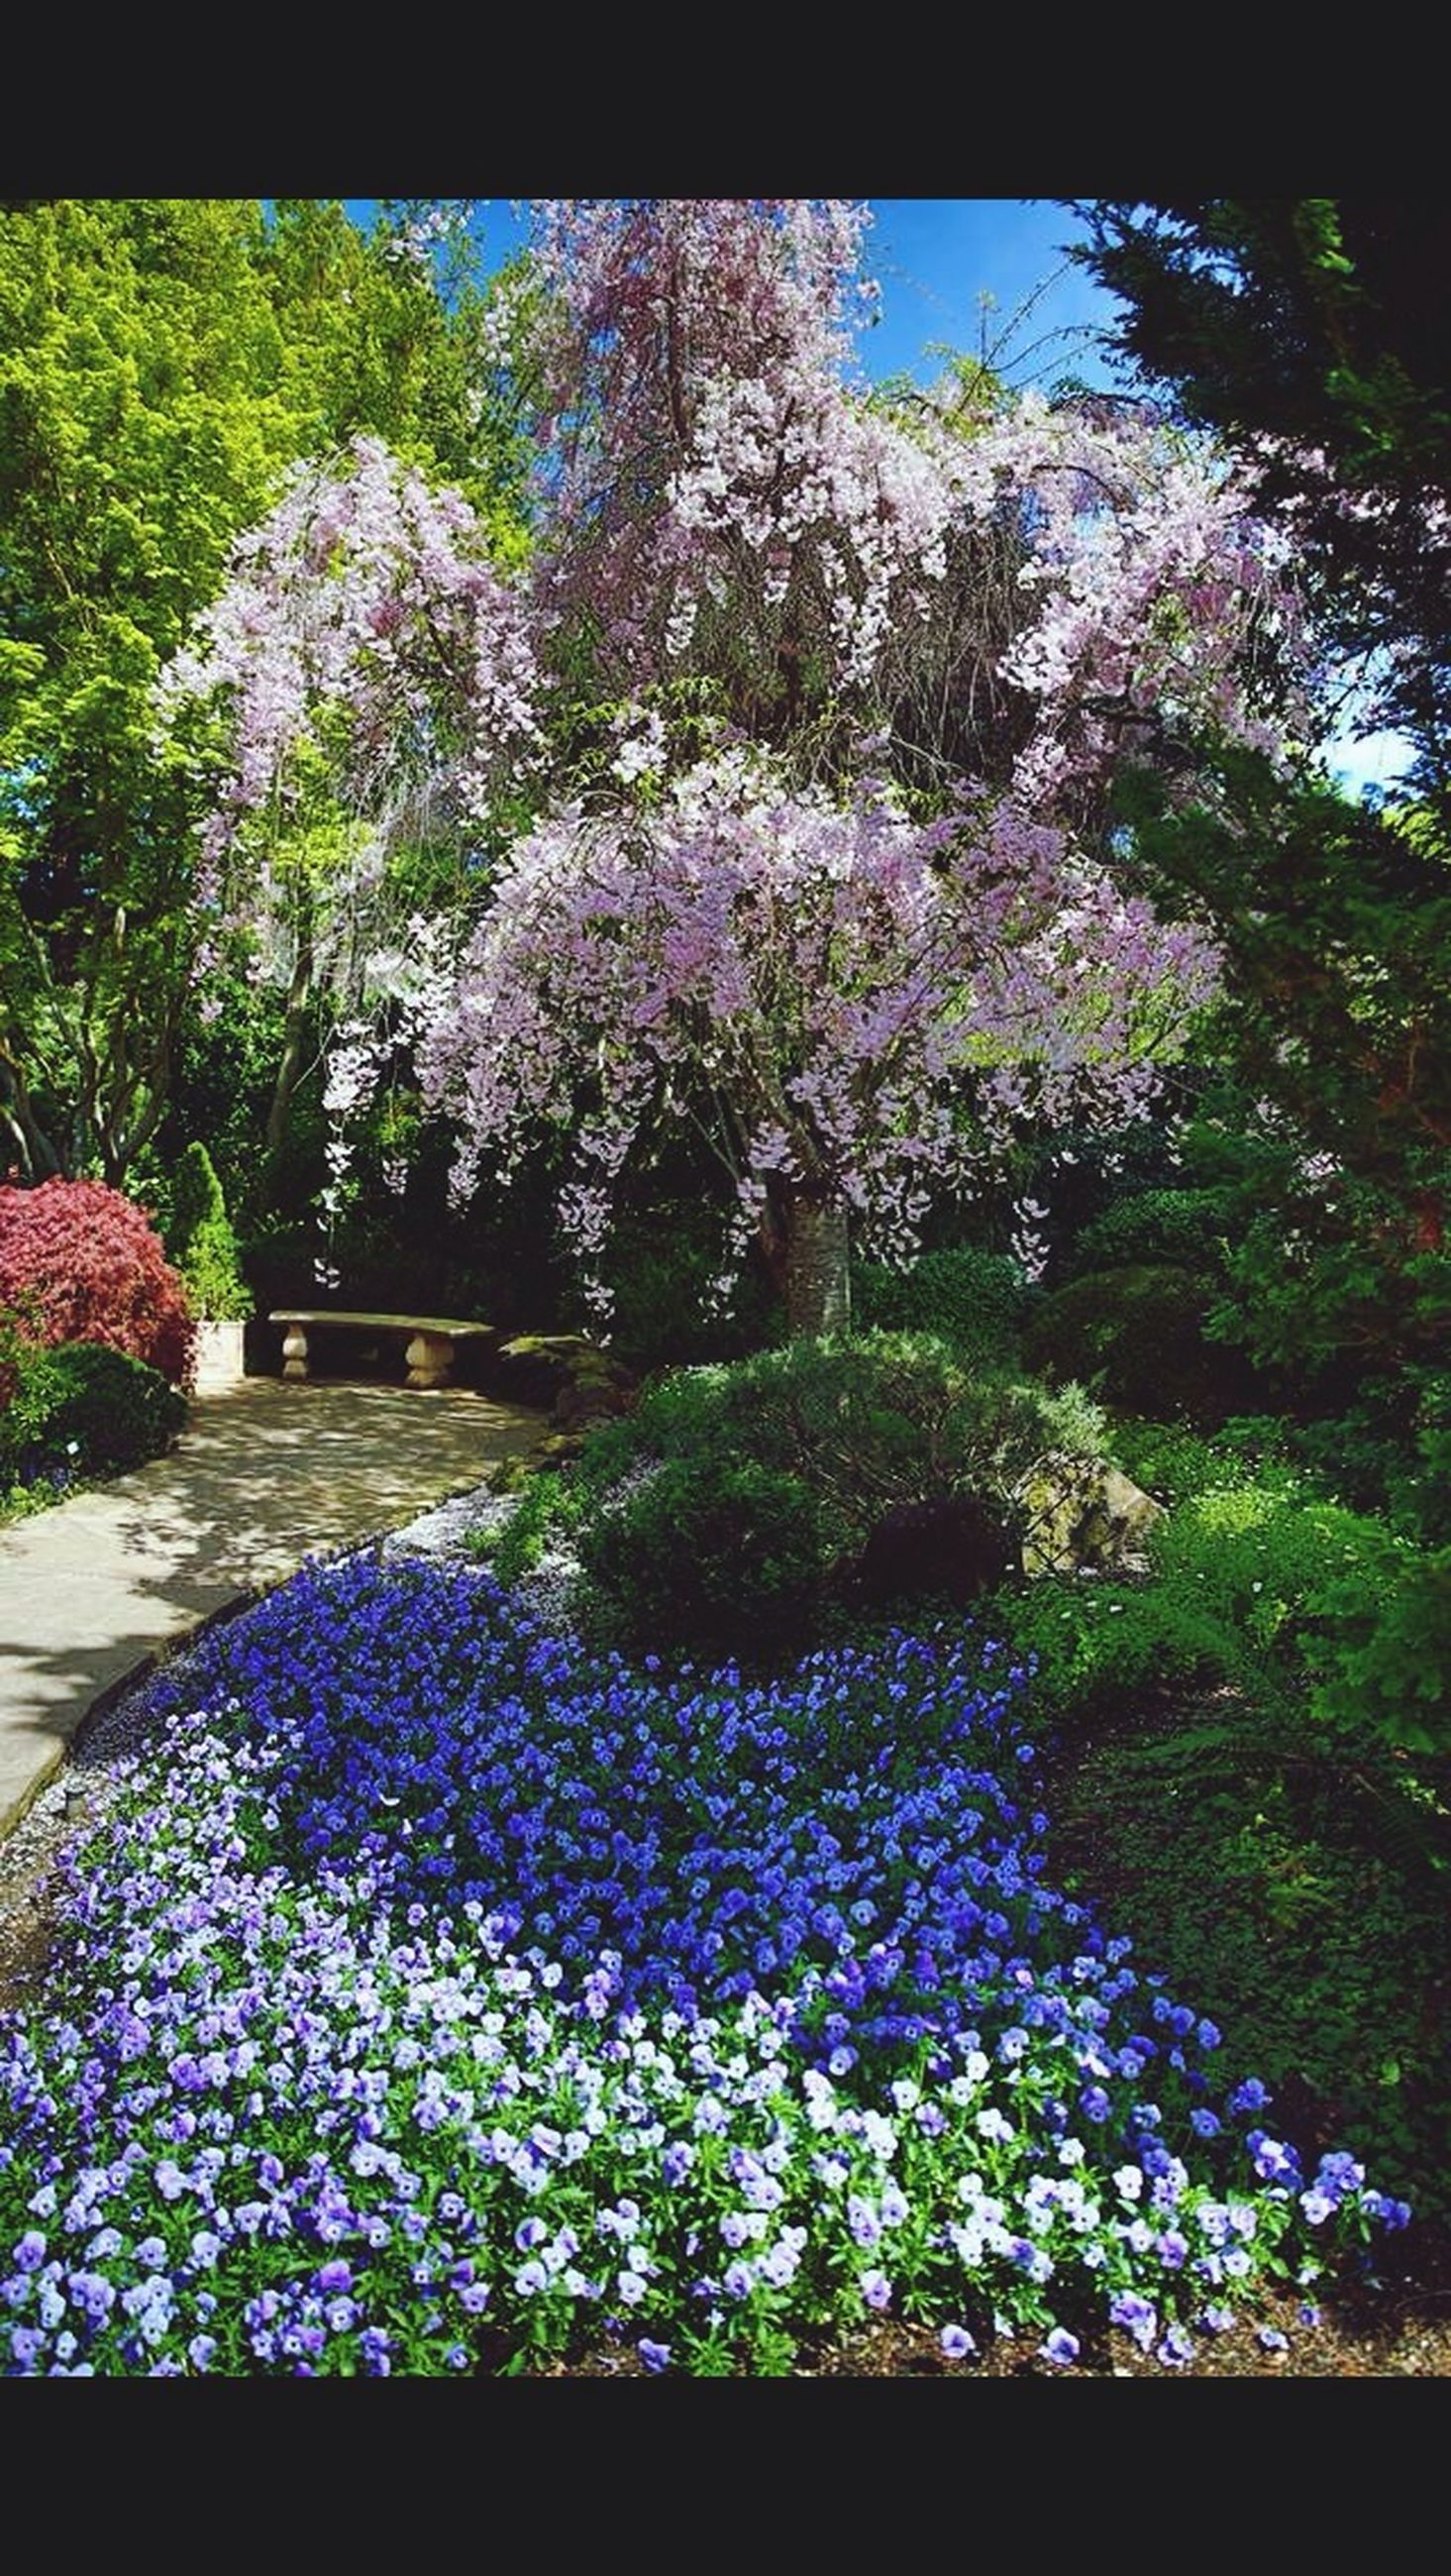 flower, growth, beauty in nature, freshness, fragility, tree, plant, nature, blooming, purple, blossom, petal, in bloom, pink color, park - man made space, day, abundance, outdoors, sunlight, no people